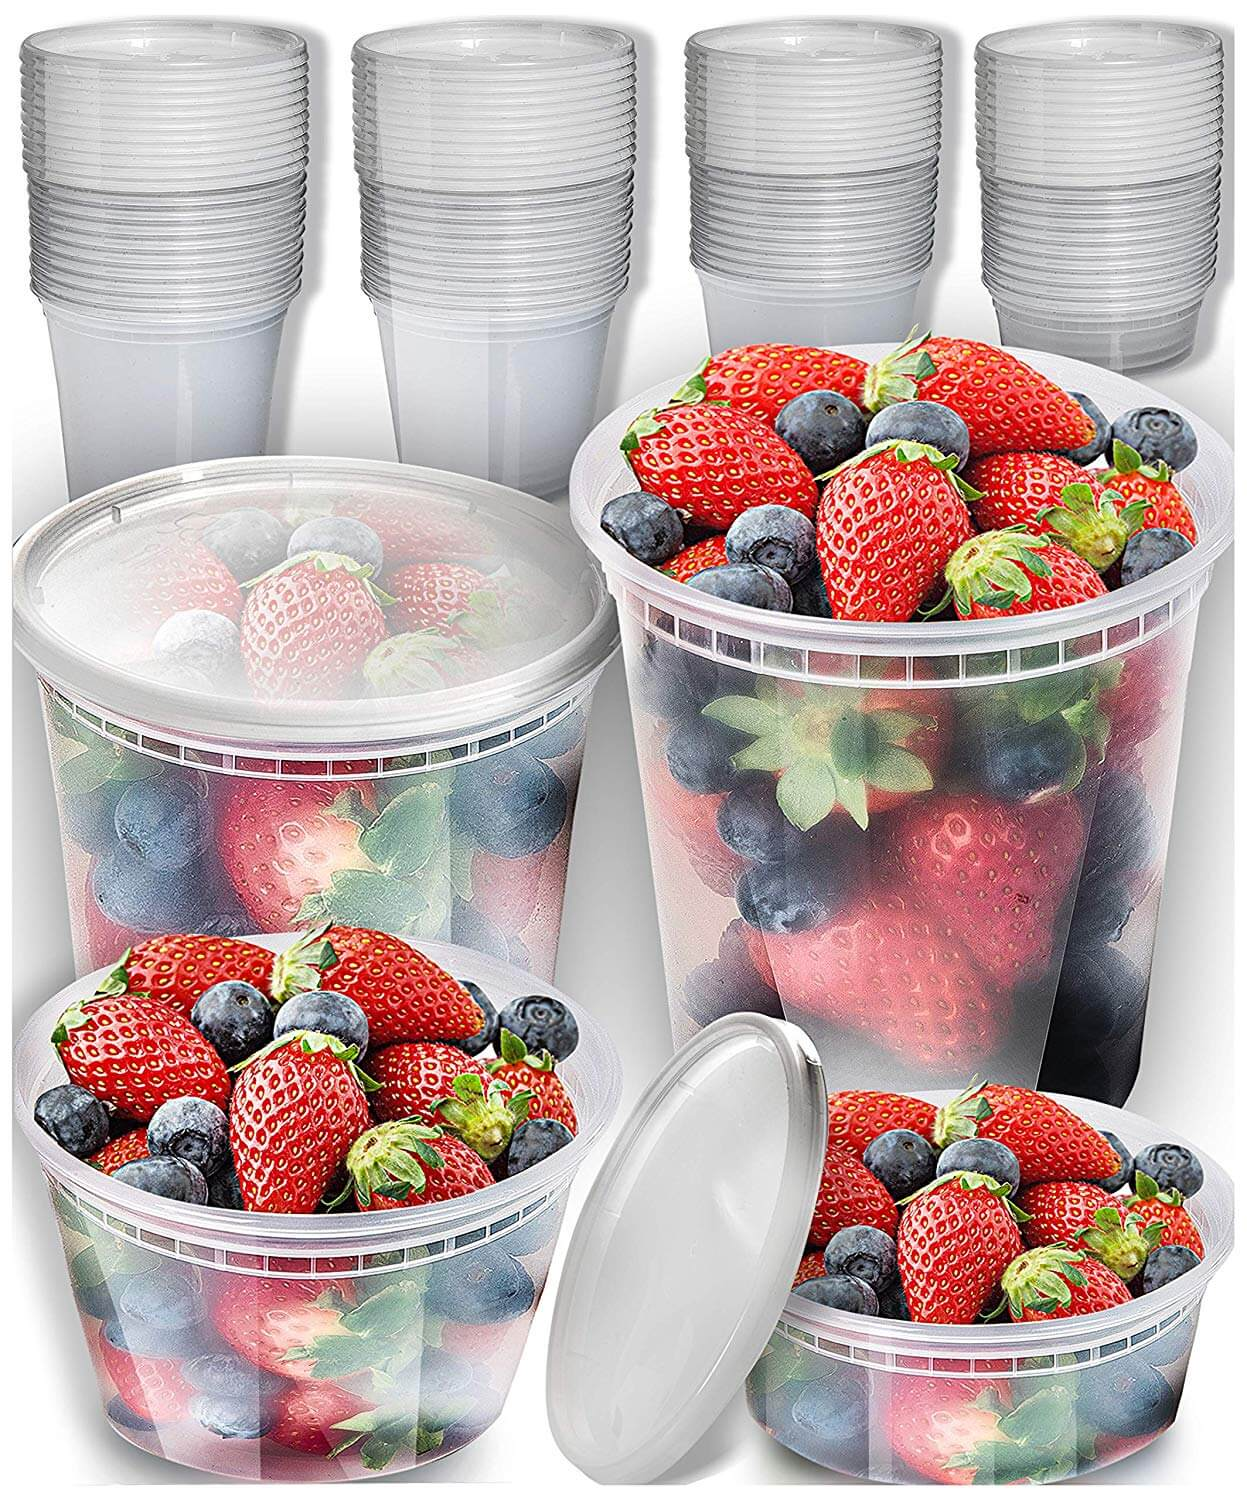 Prep Naturals Plastic Containers With Lids Set